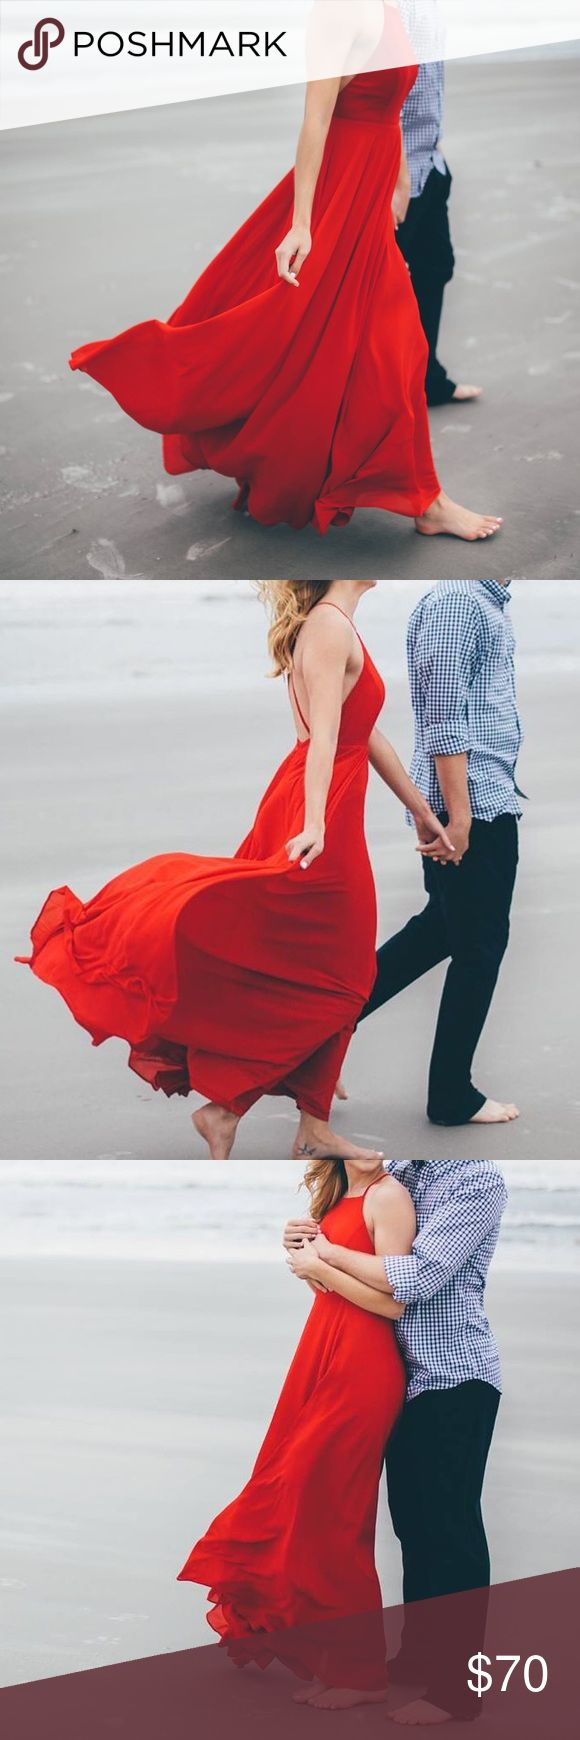 Red Maxi Dress STUNNING MAXI DRESS!!! super flowy, fully lined, soft material. Criss cross straps in the back, open back. Straps are adjustable. Halter neckline. Long in length. Only worn for engagement pictures Lulu's Dresses Maxi